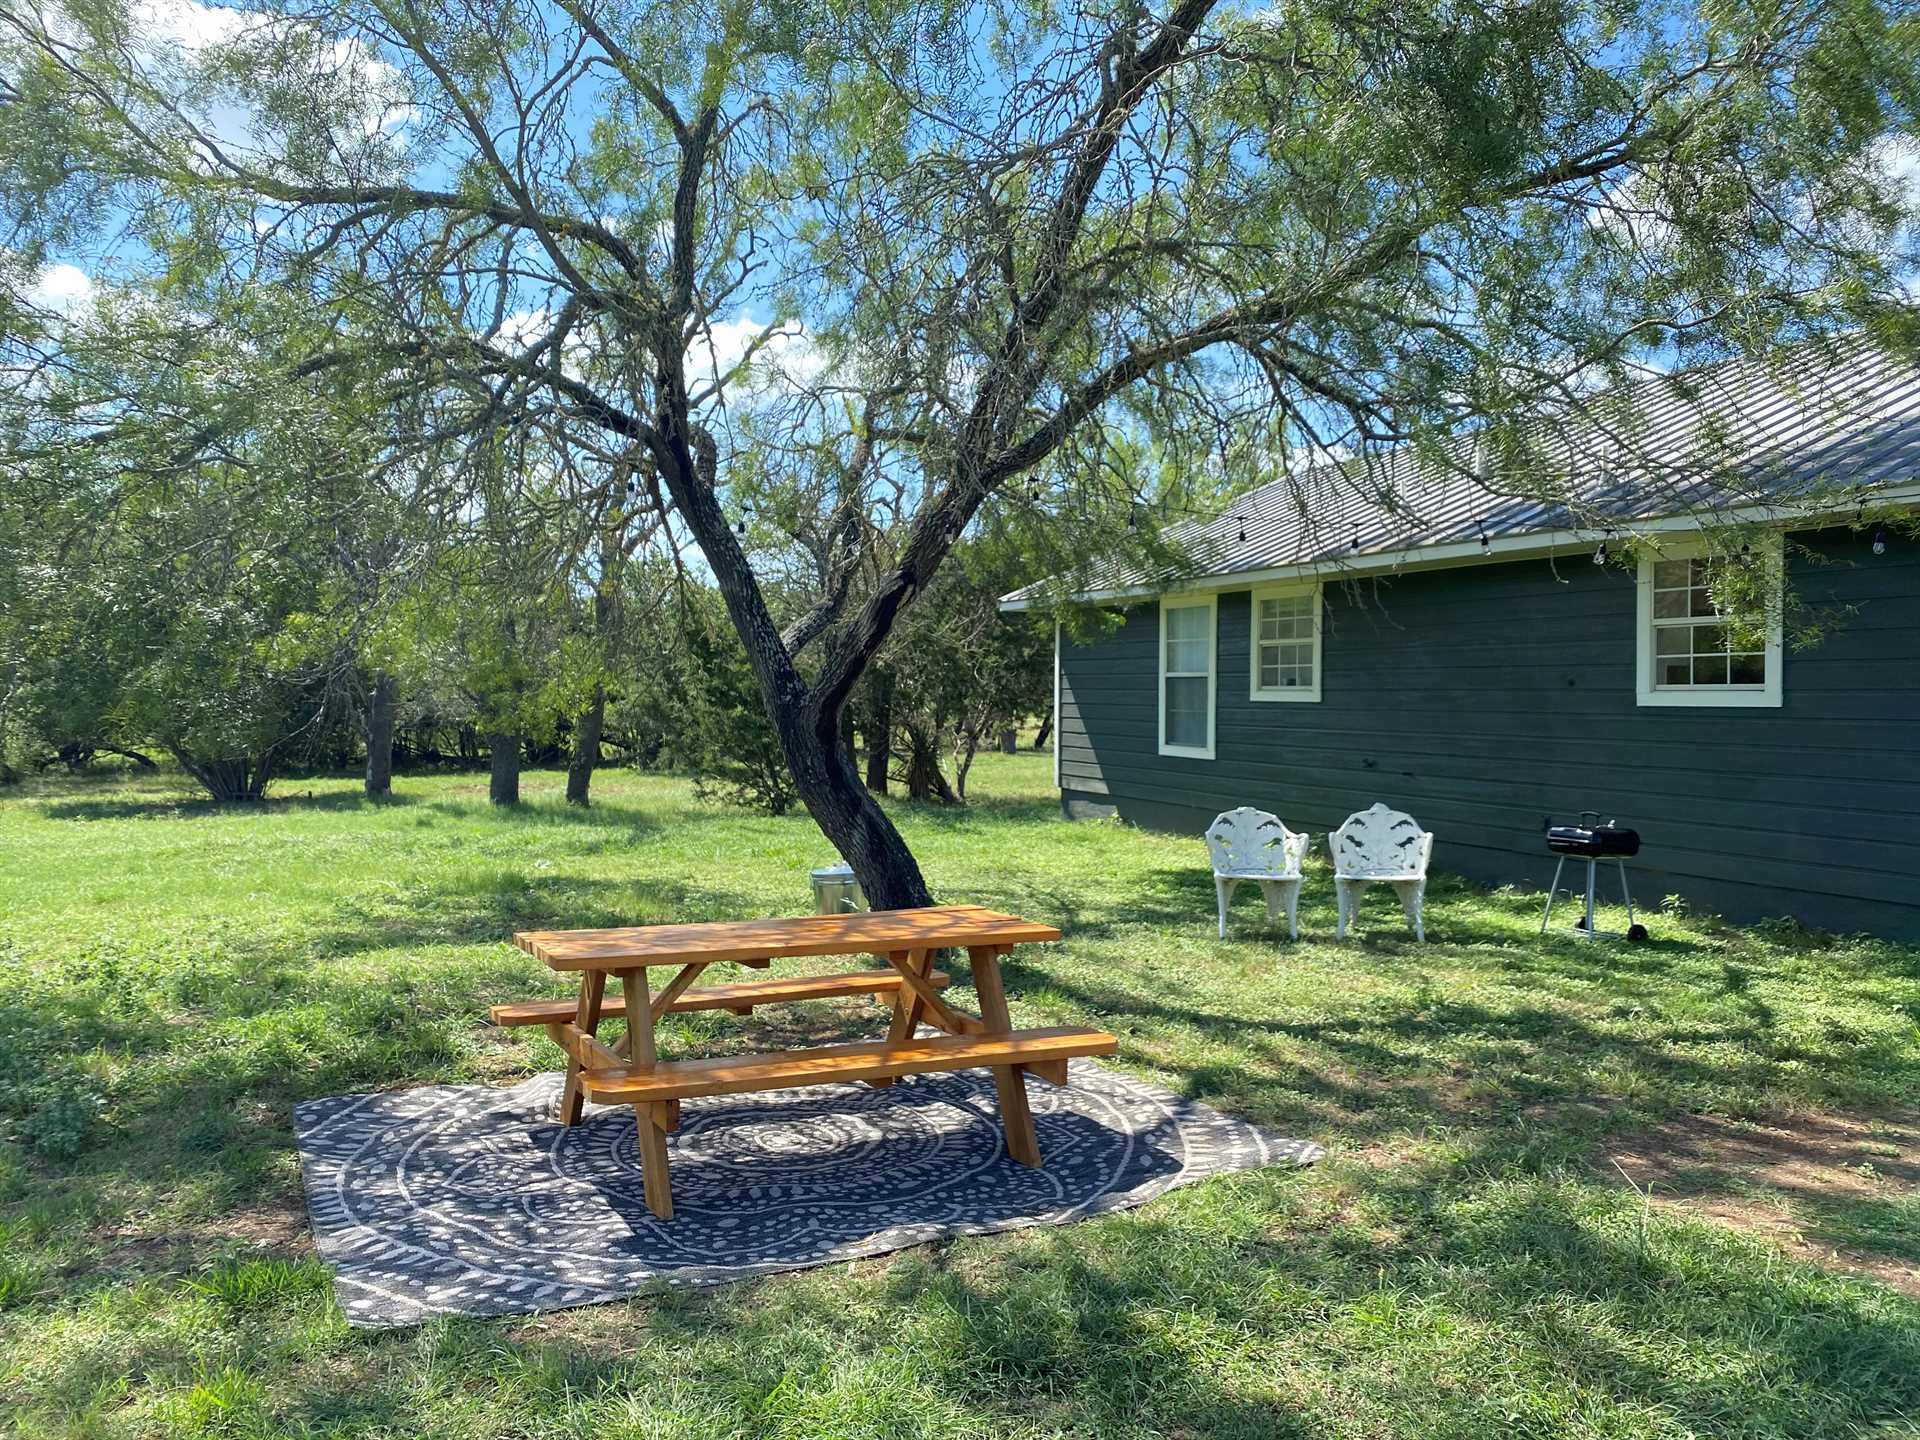 The shaded picnic table is the perfect place to sample a nice BBQ spread you've prepared on the charcoal grill.